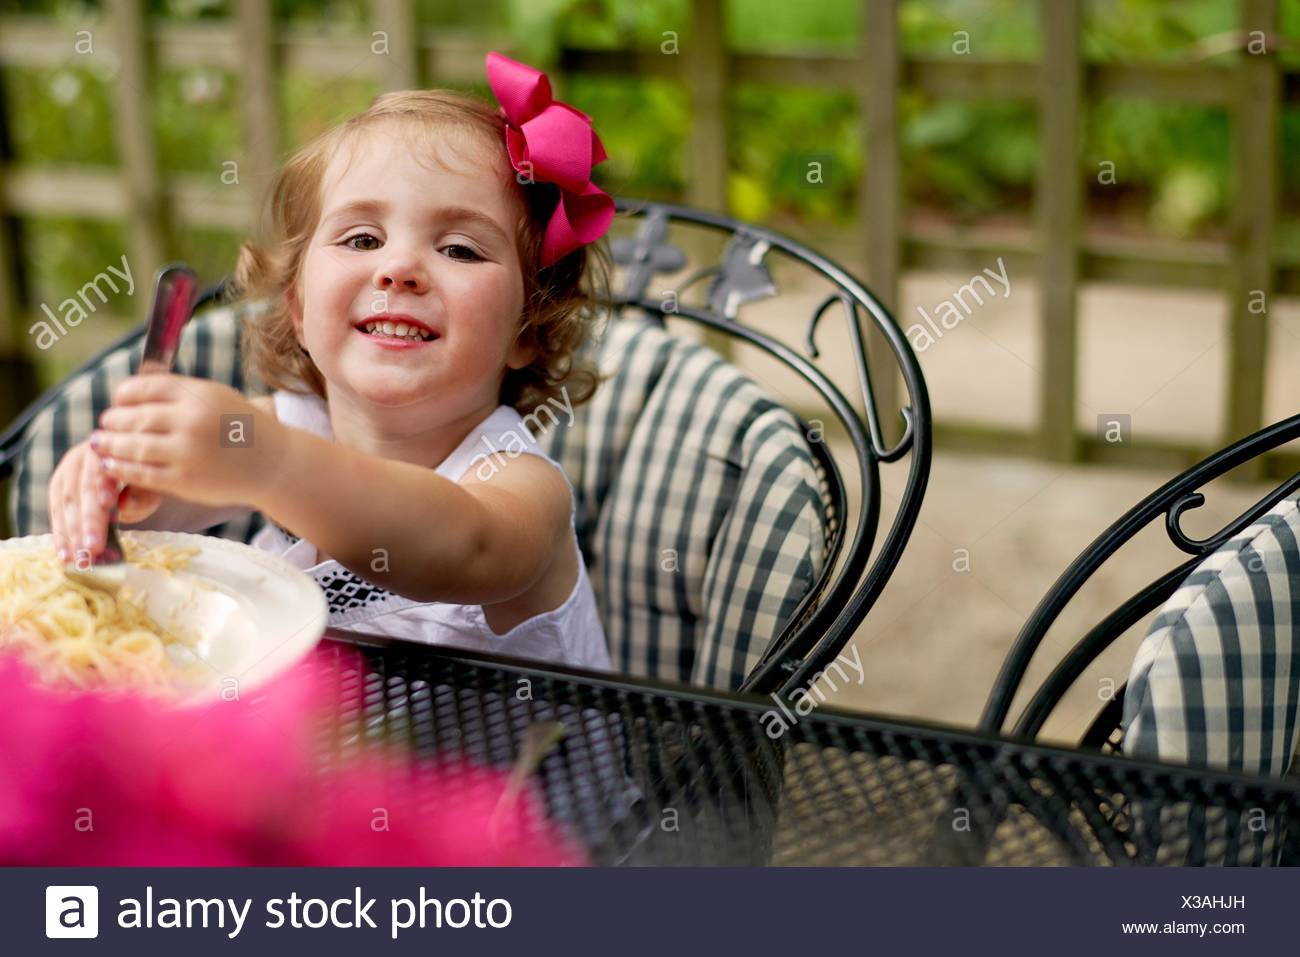 Girl dining at garden table looking at camera smiling - Stock Image